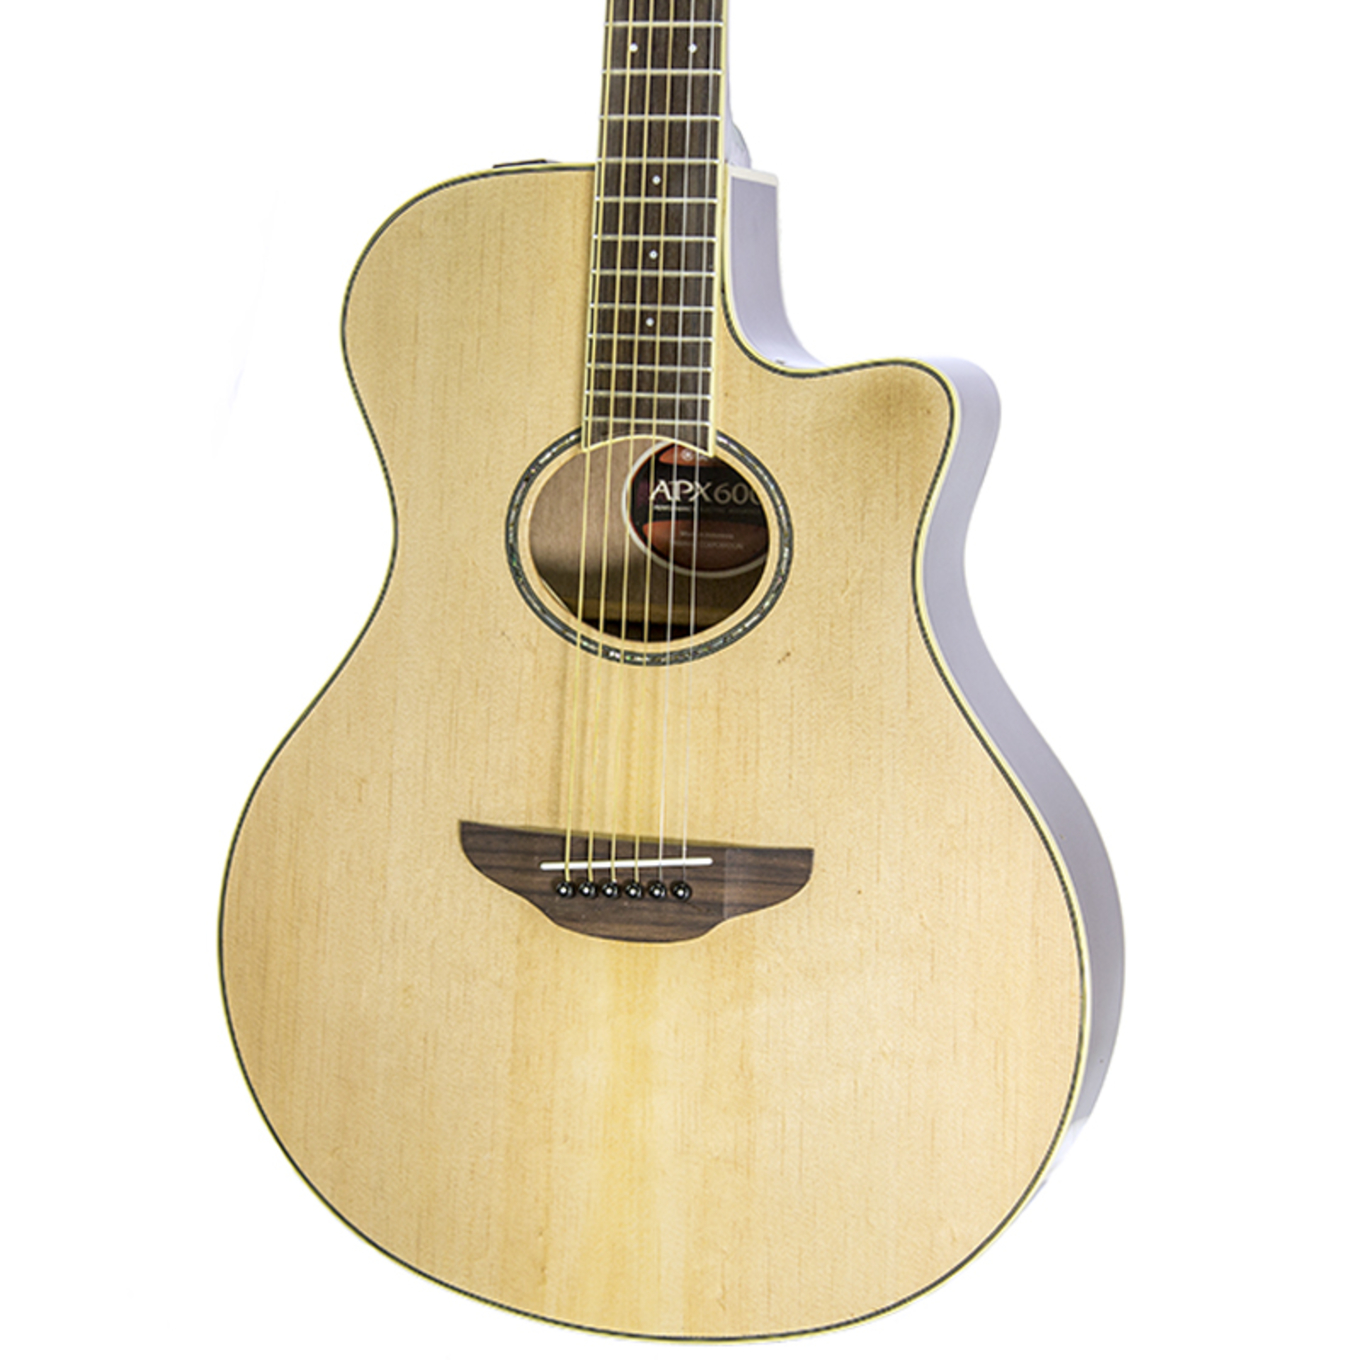 Acoustic Yamaha Brand New Yamaha Apx600 Natural Acoustic Electric Guitar